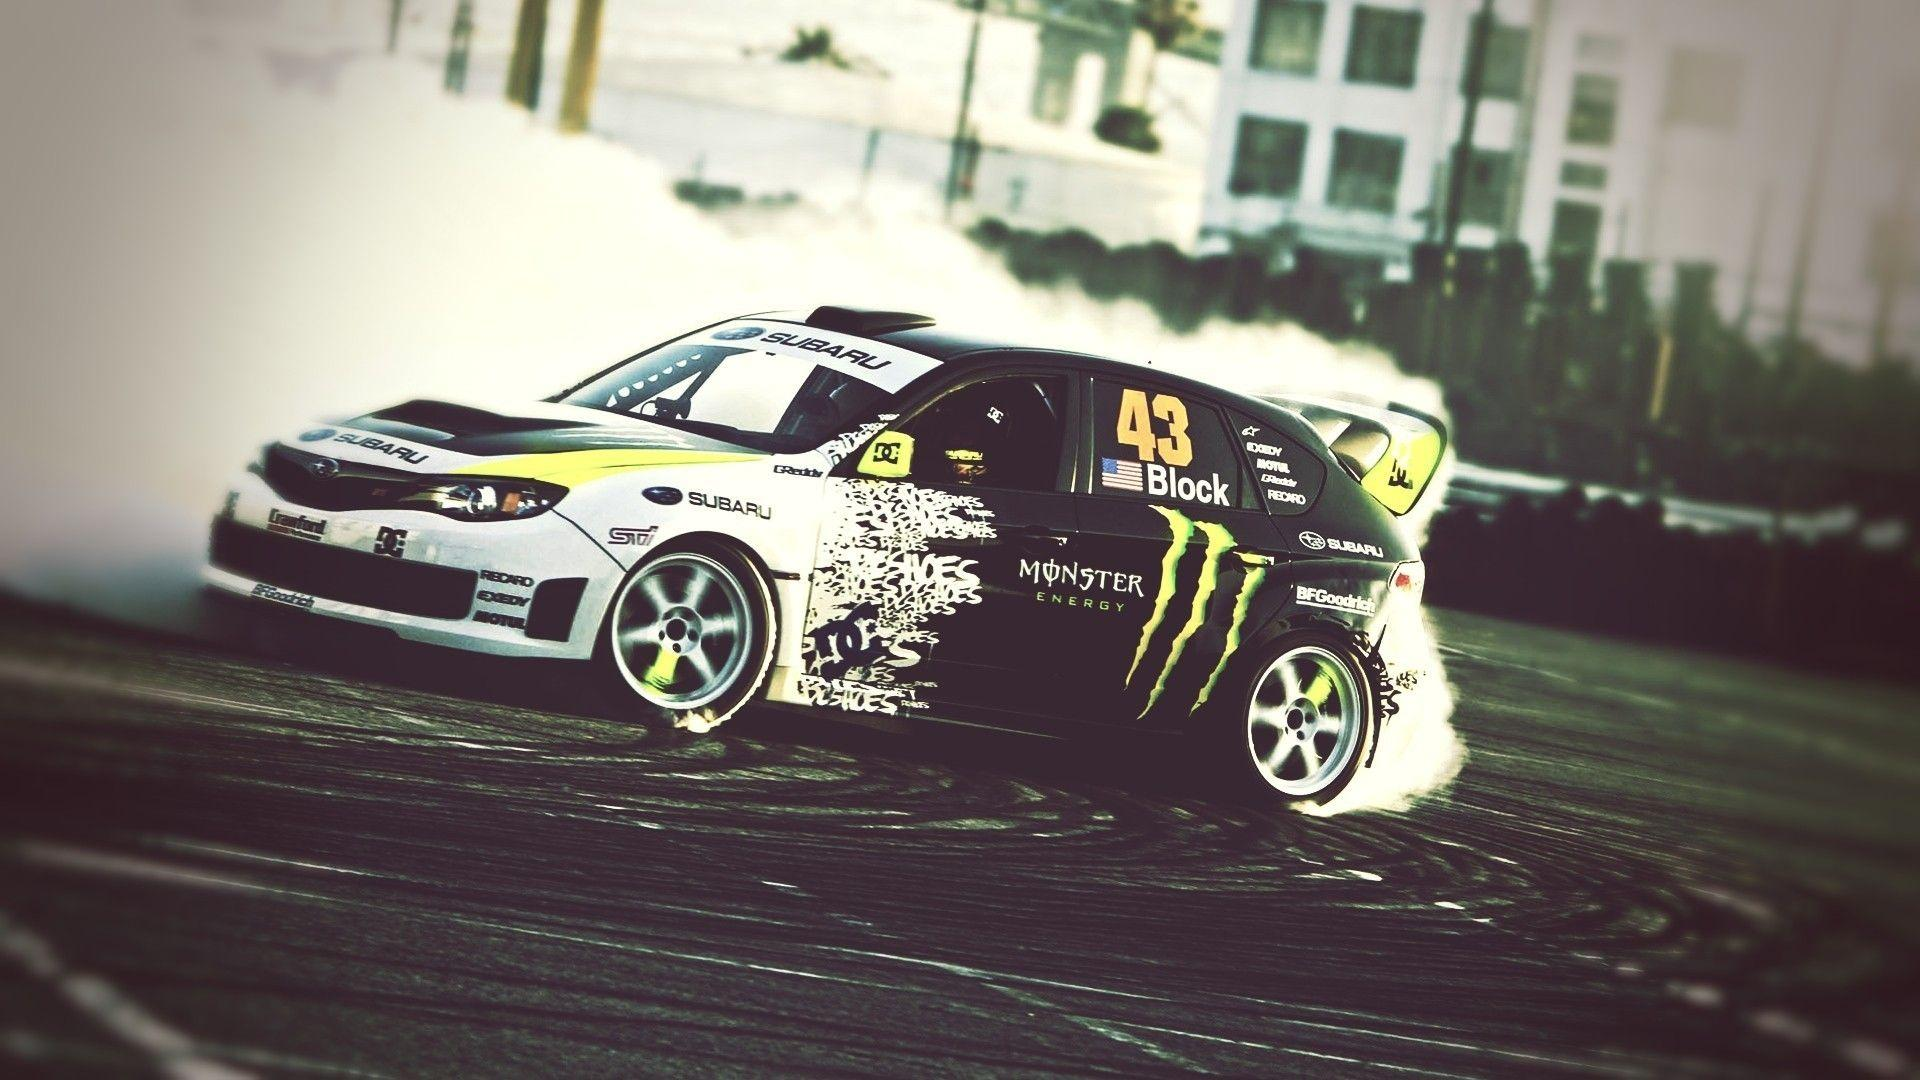 Wallpapers : vehicle, Drifting, sports car, Subaru, Monster Energy